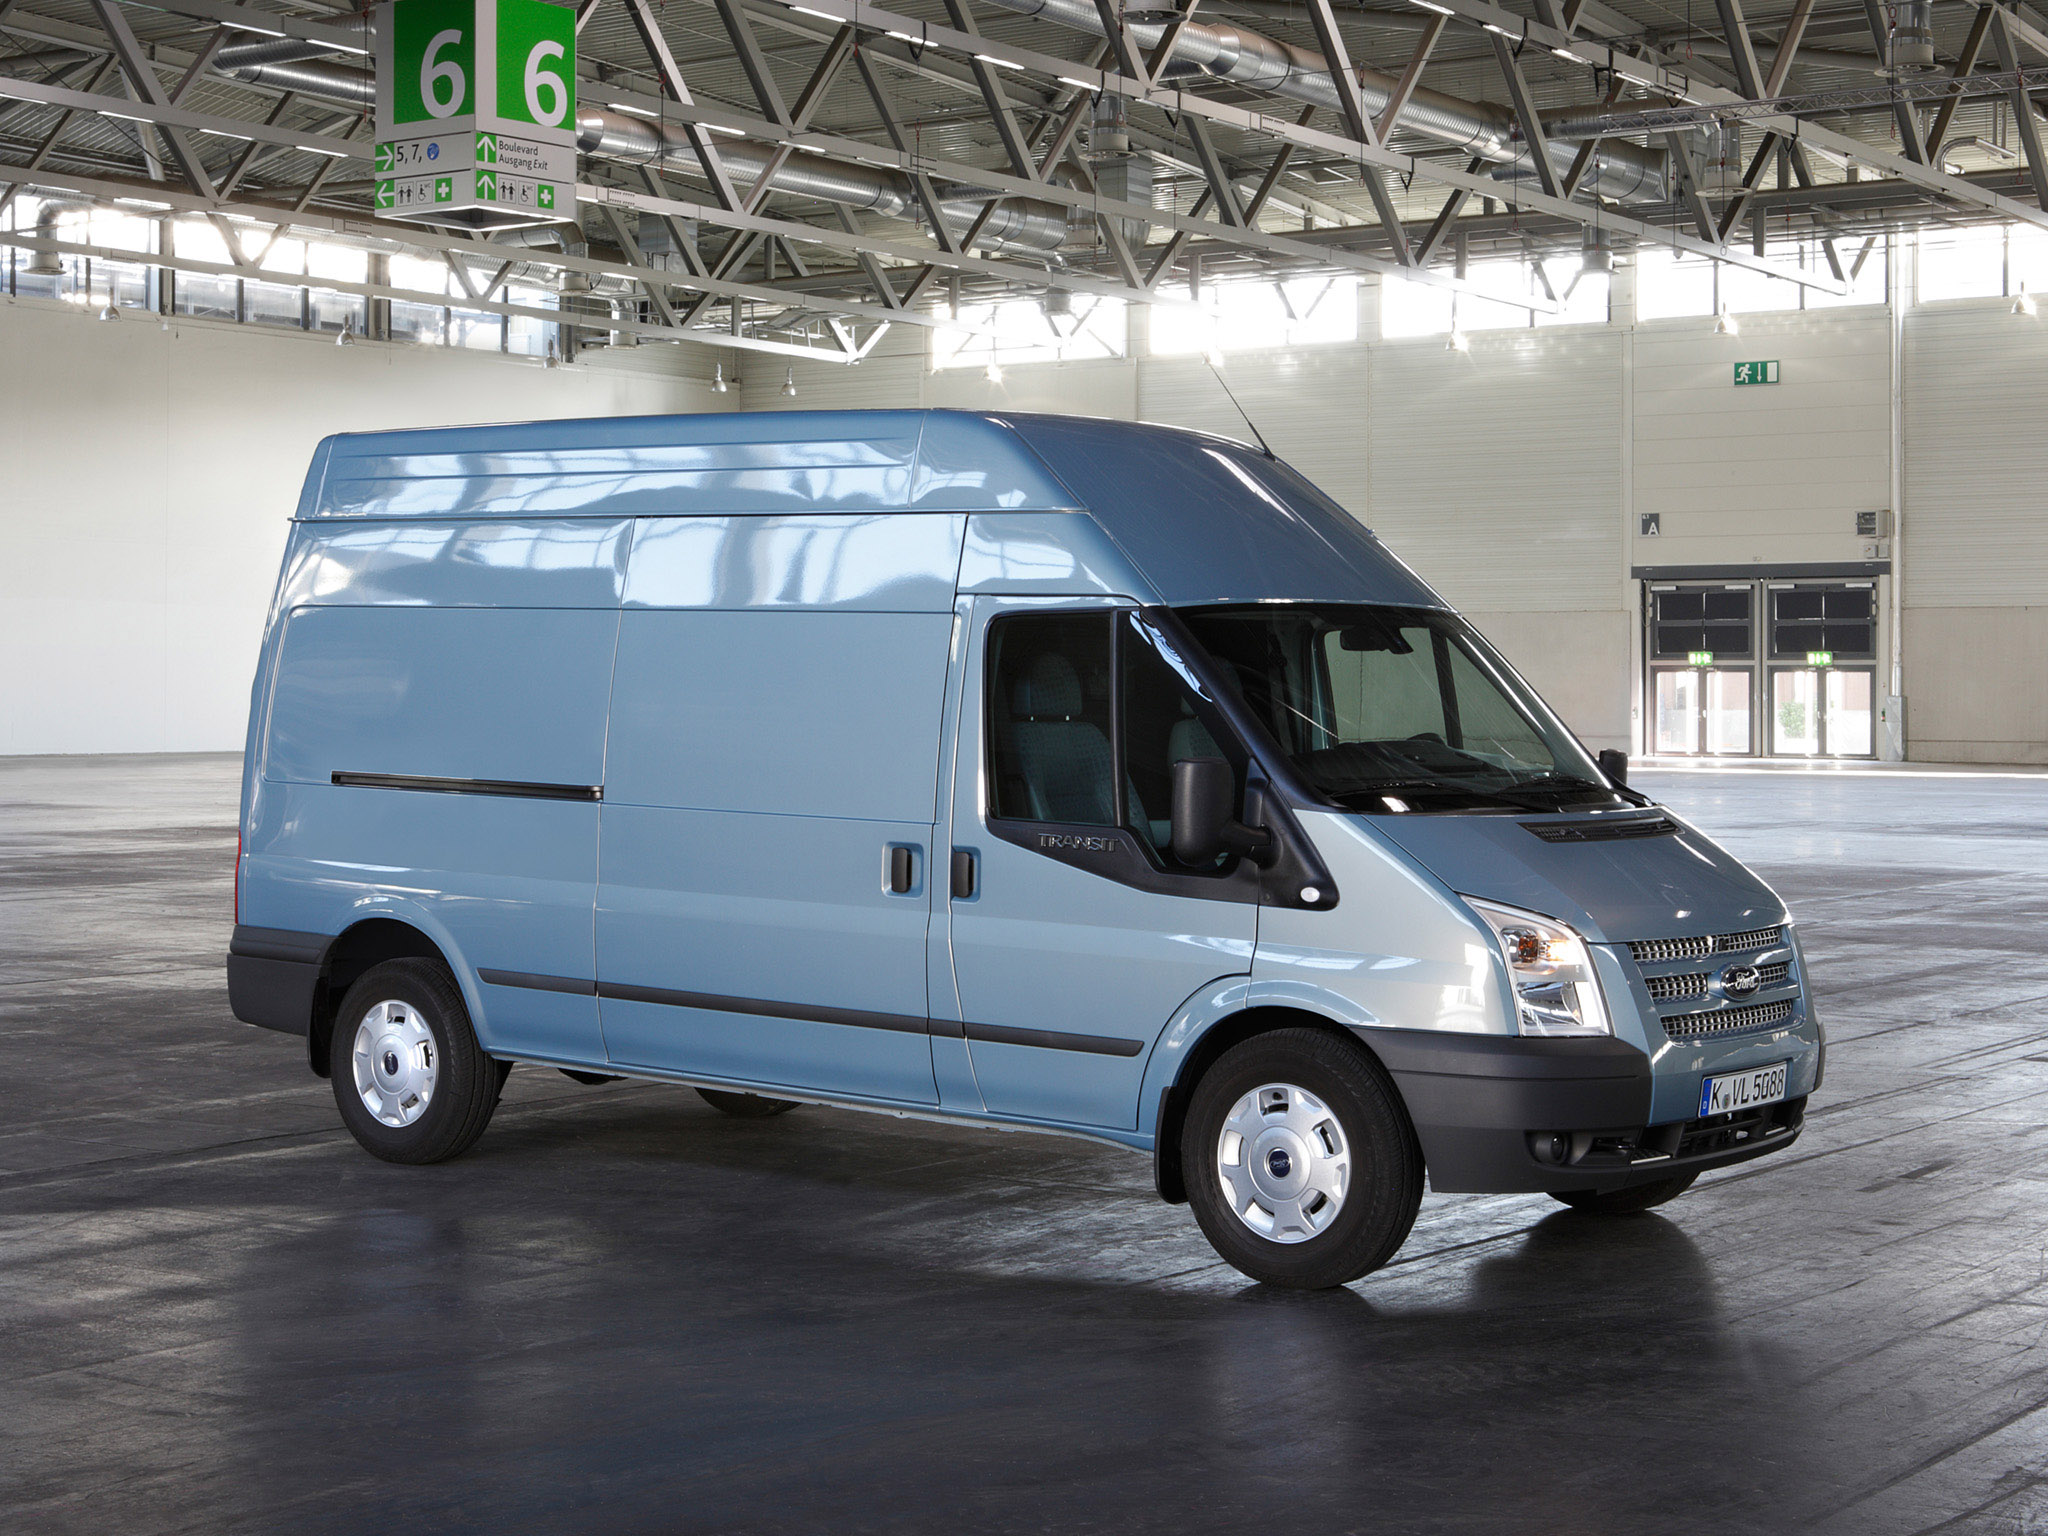 ford transit lwb van 2011 ford transit lwb van 2011 photo 01 car in pictures car photo gallery. Black Bedroom Furniture Sets. Home Design Ideas